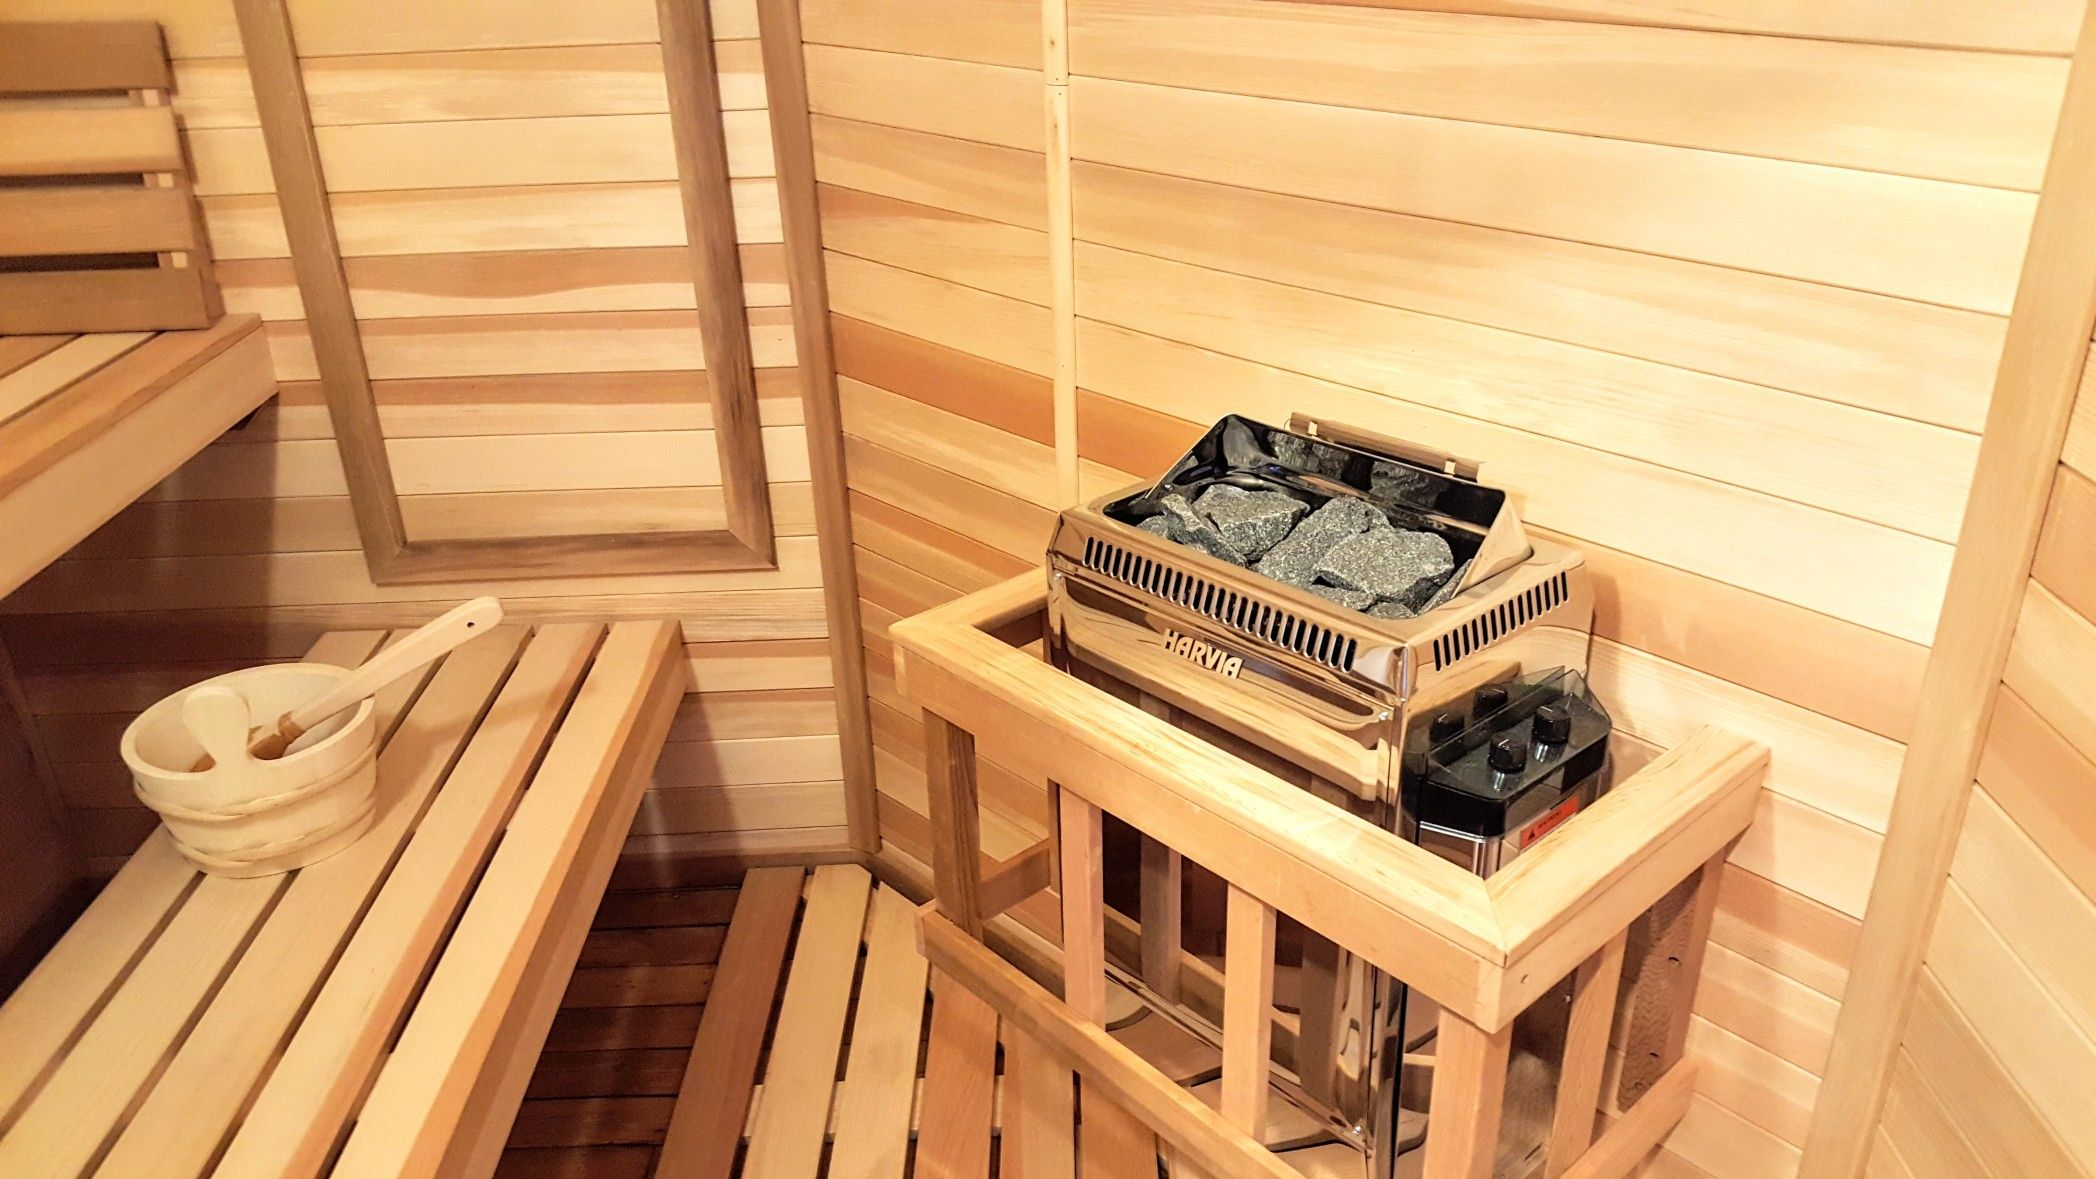 This Beautiful Sauna Was Custom Built To Fit A Space Once Used As A Closet.